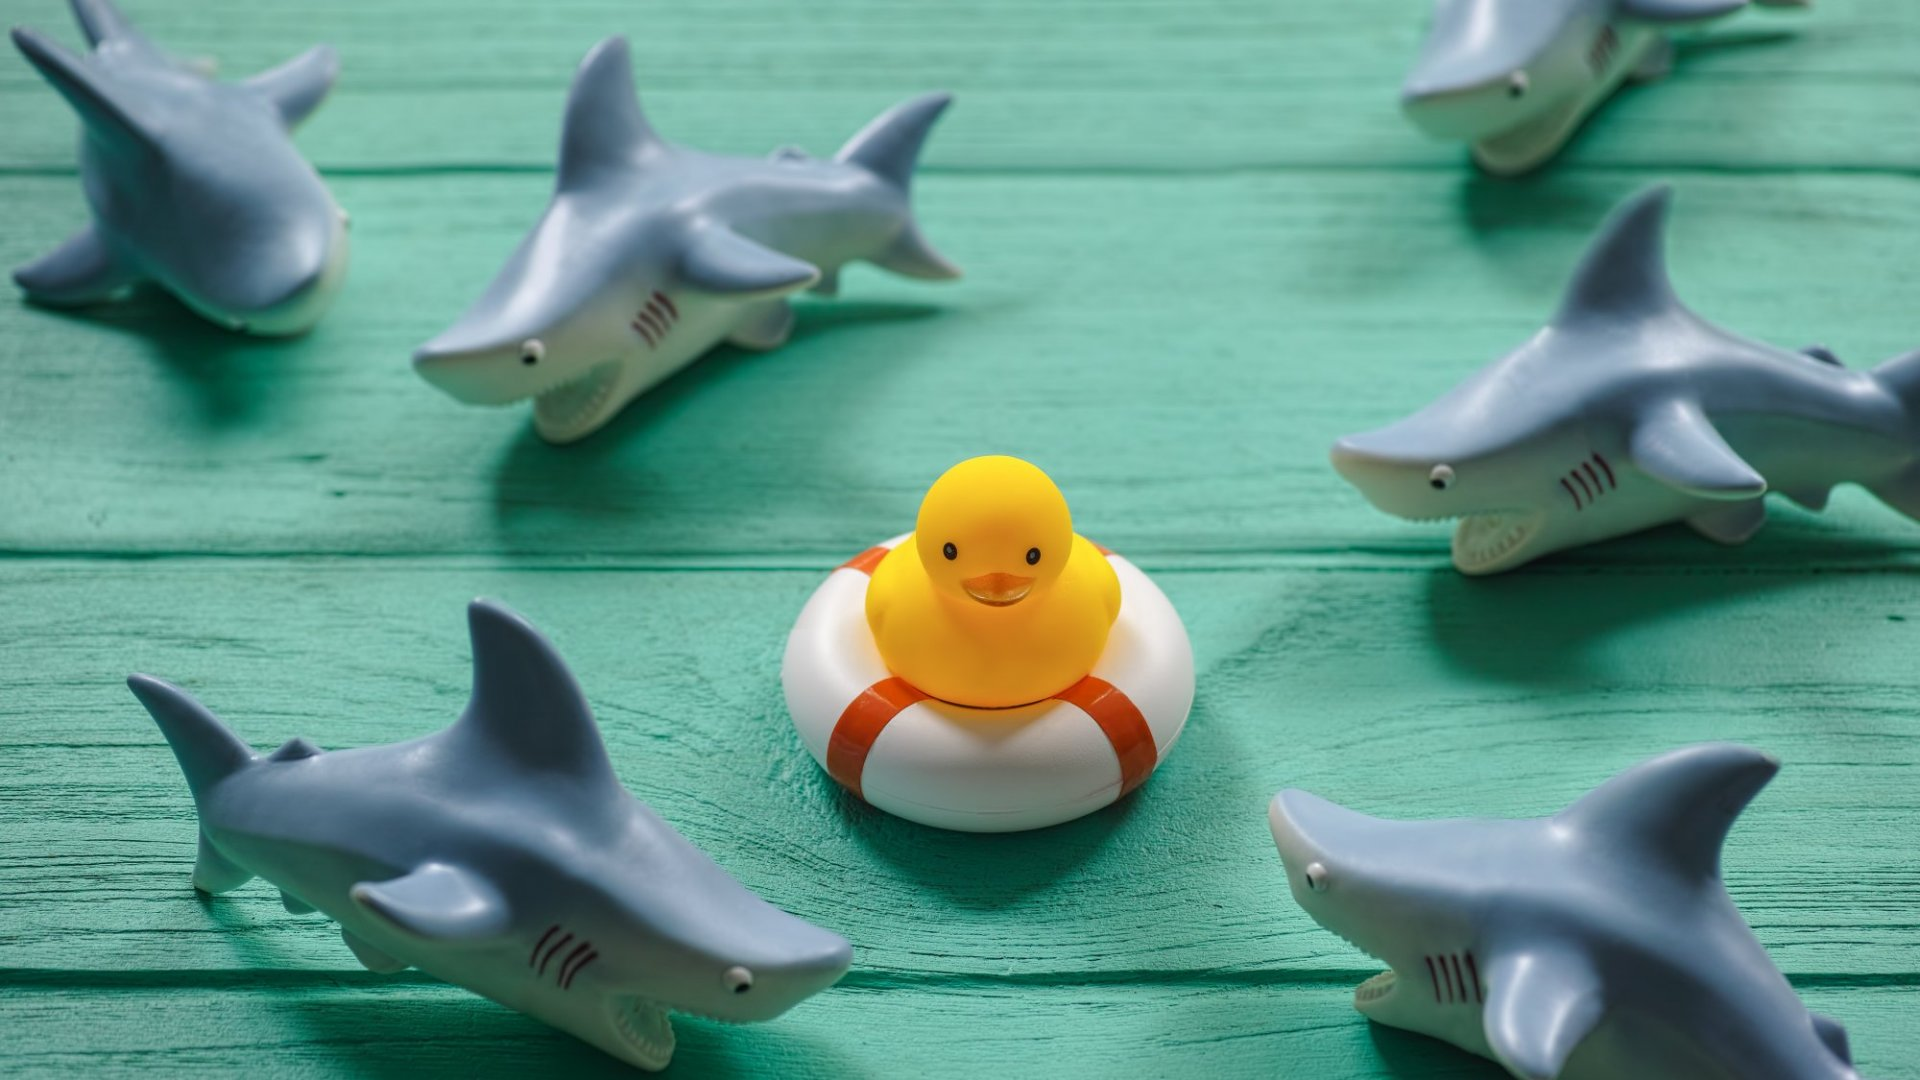 6 Mistakes New Leaders Make and How to Avoid Them